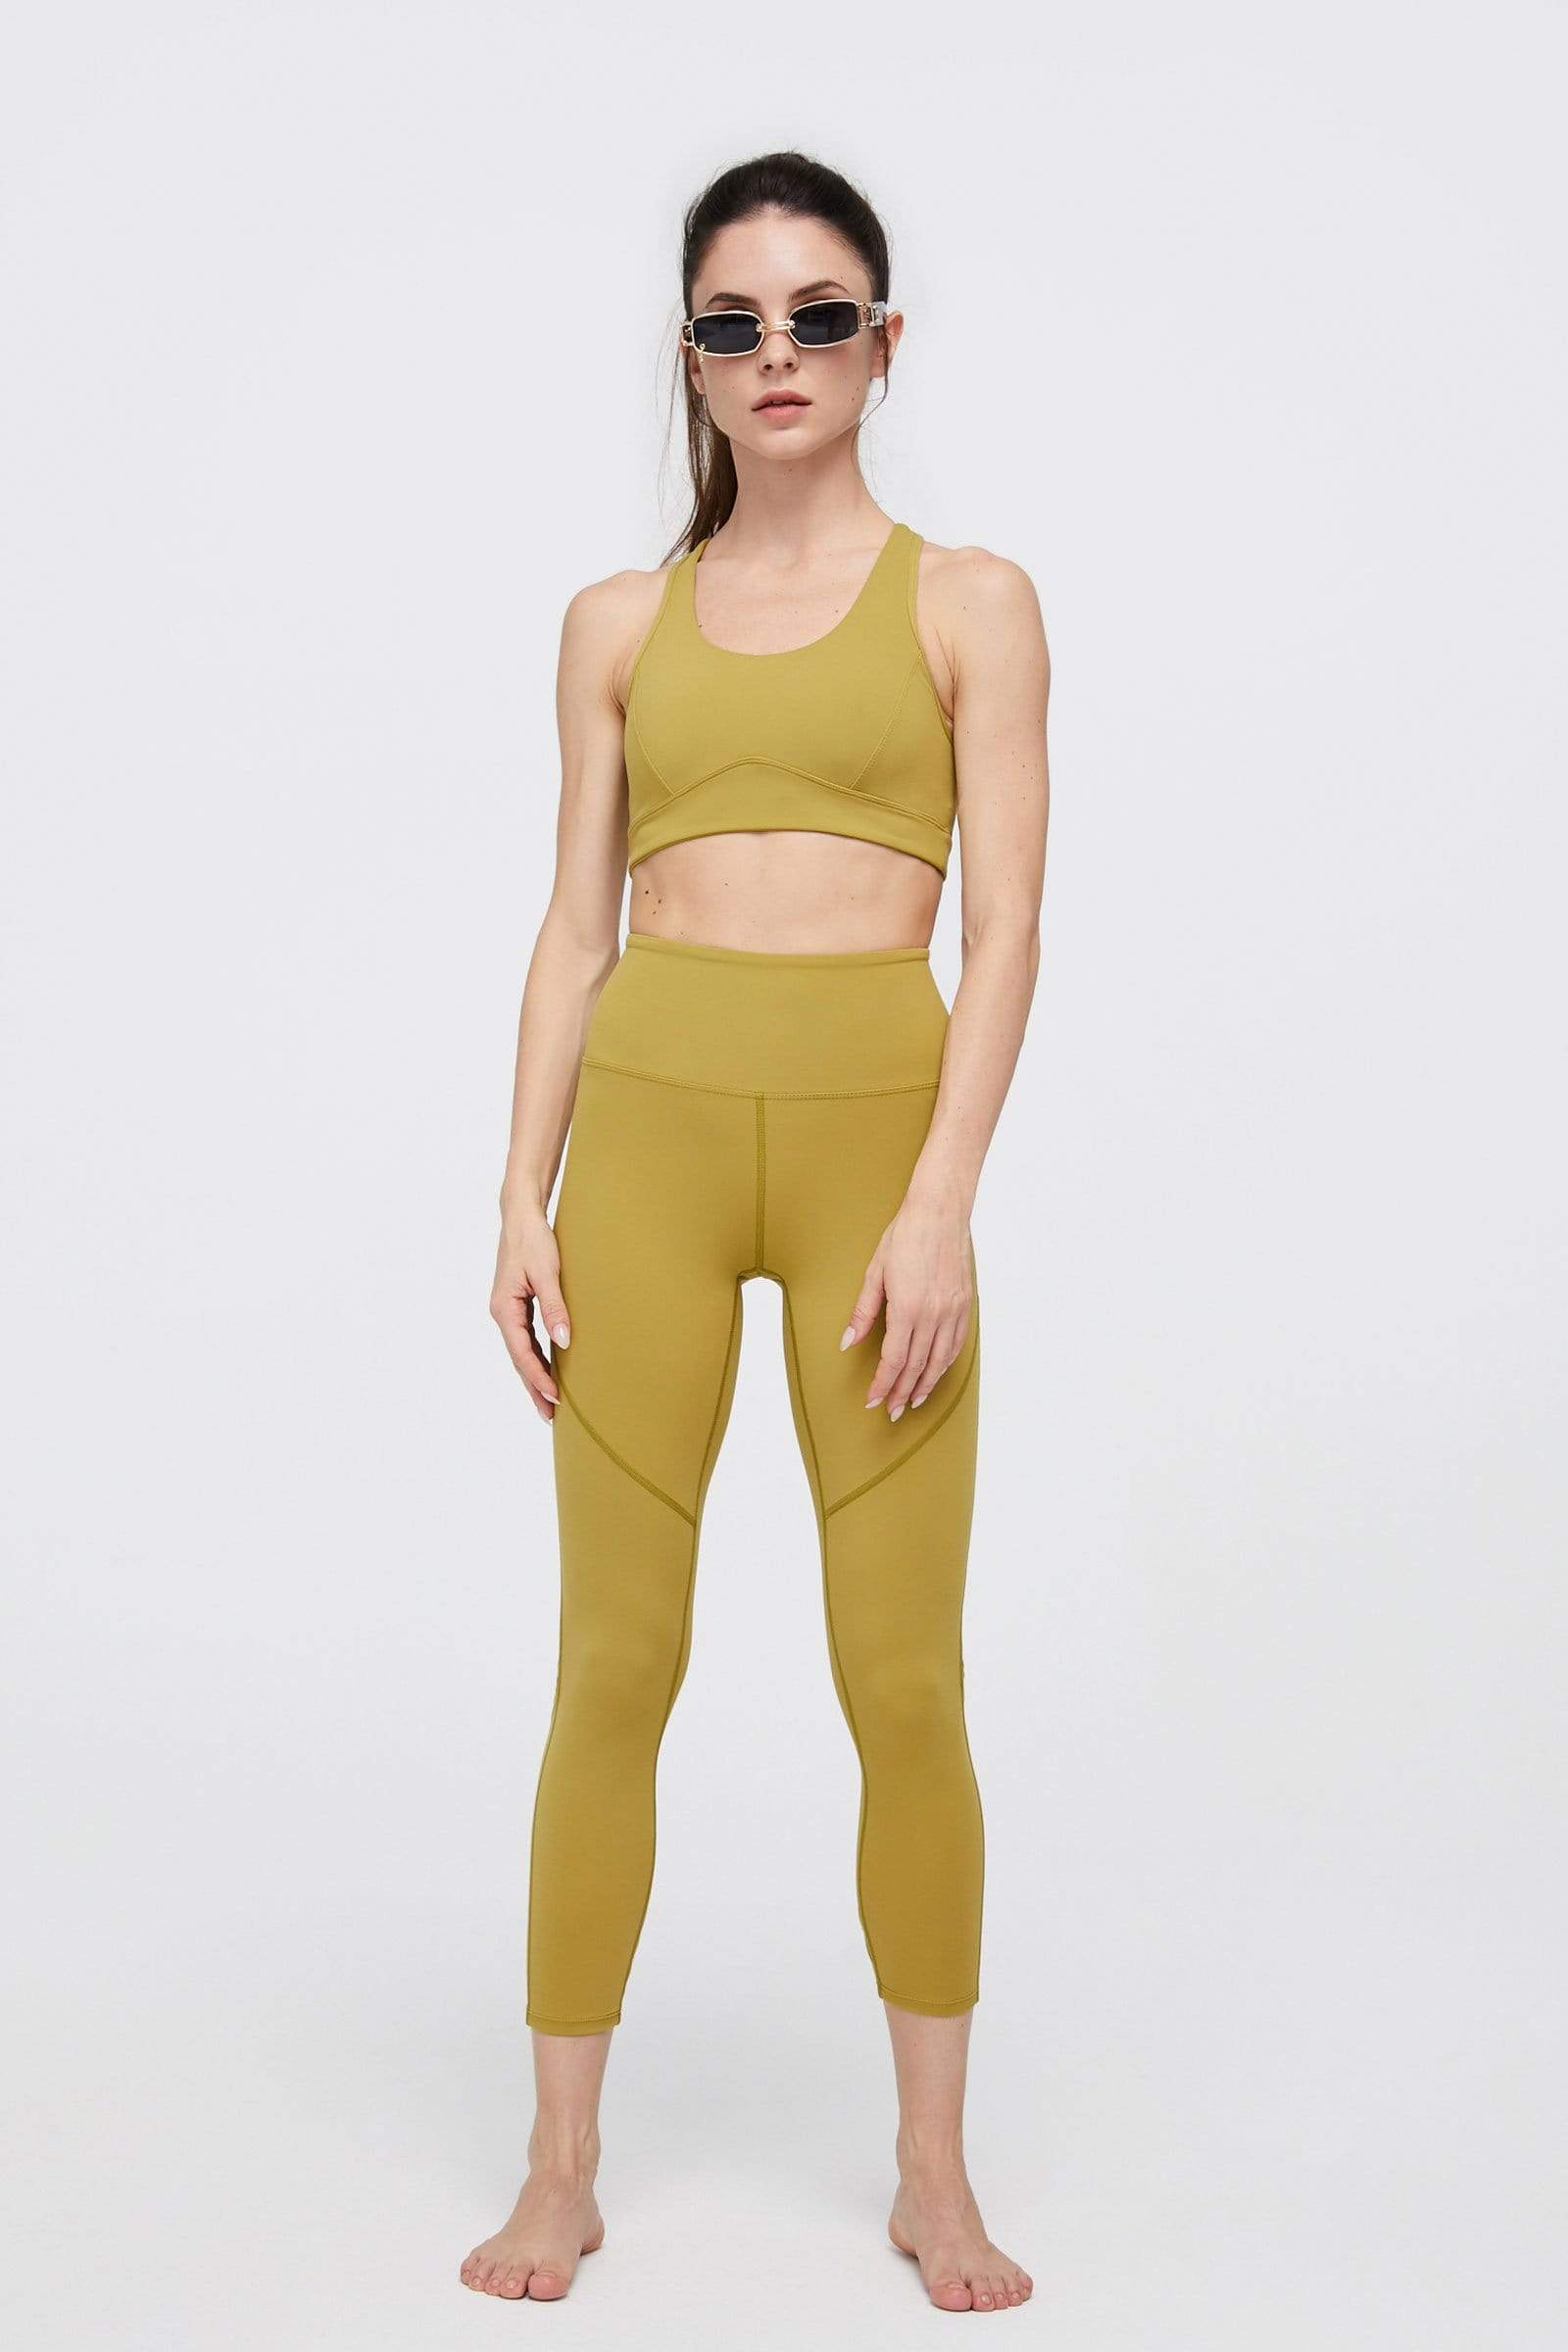 Citrus Lime High-Waist Vented Legging